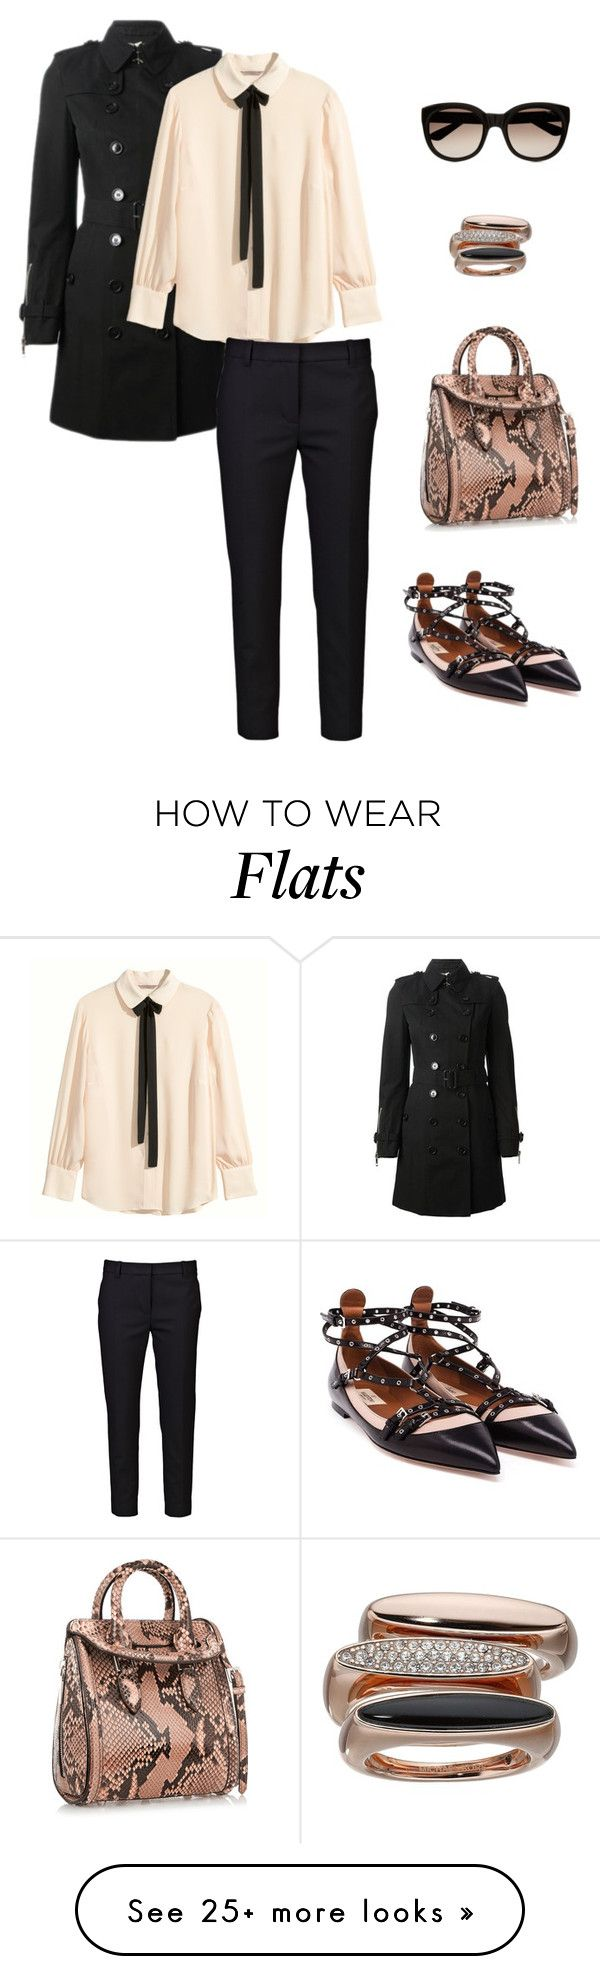 """So Stylish: Ankle Wrap Flats I"" by marika-pi on Polyvore featuring Valentino, Burberry, H&M, 3.1 Phillip Lim, Alexander McQueen, Yves Saint Laurent and Michael Kors"